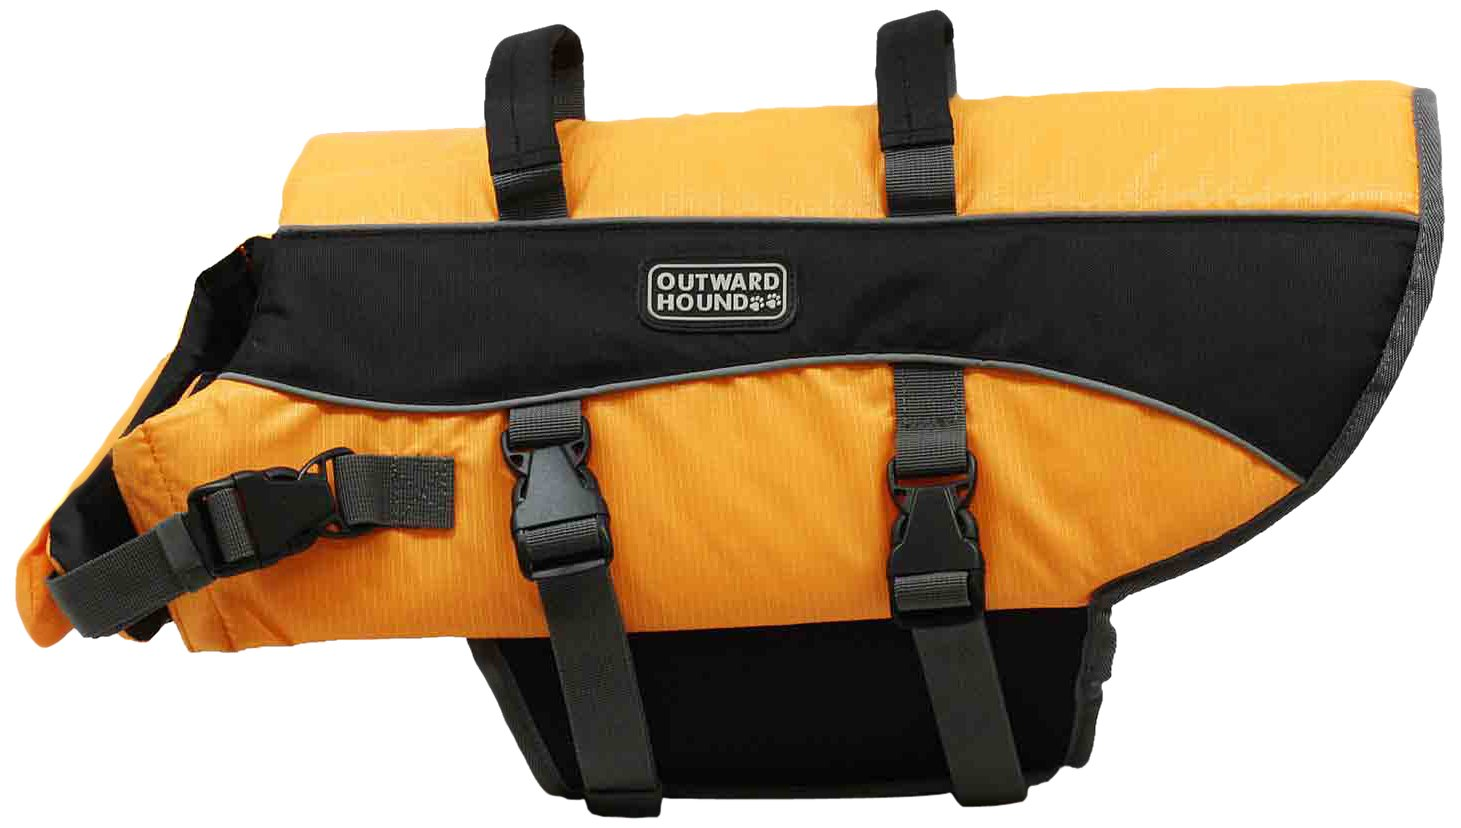 Kyjen Outward Hound Life Jacket